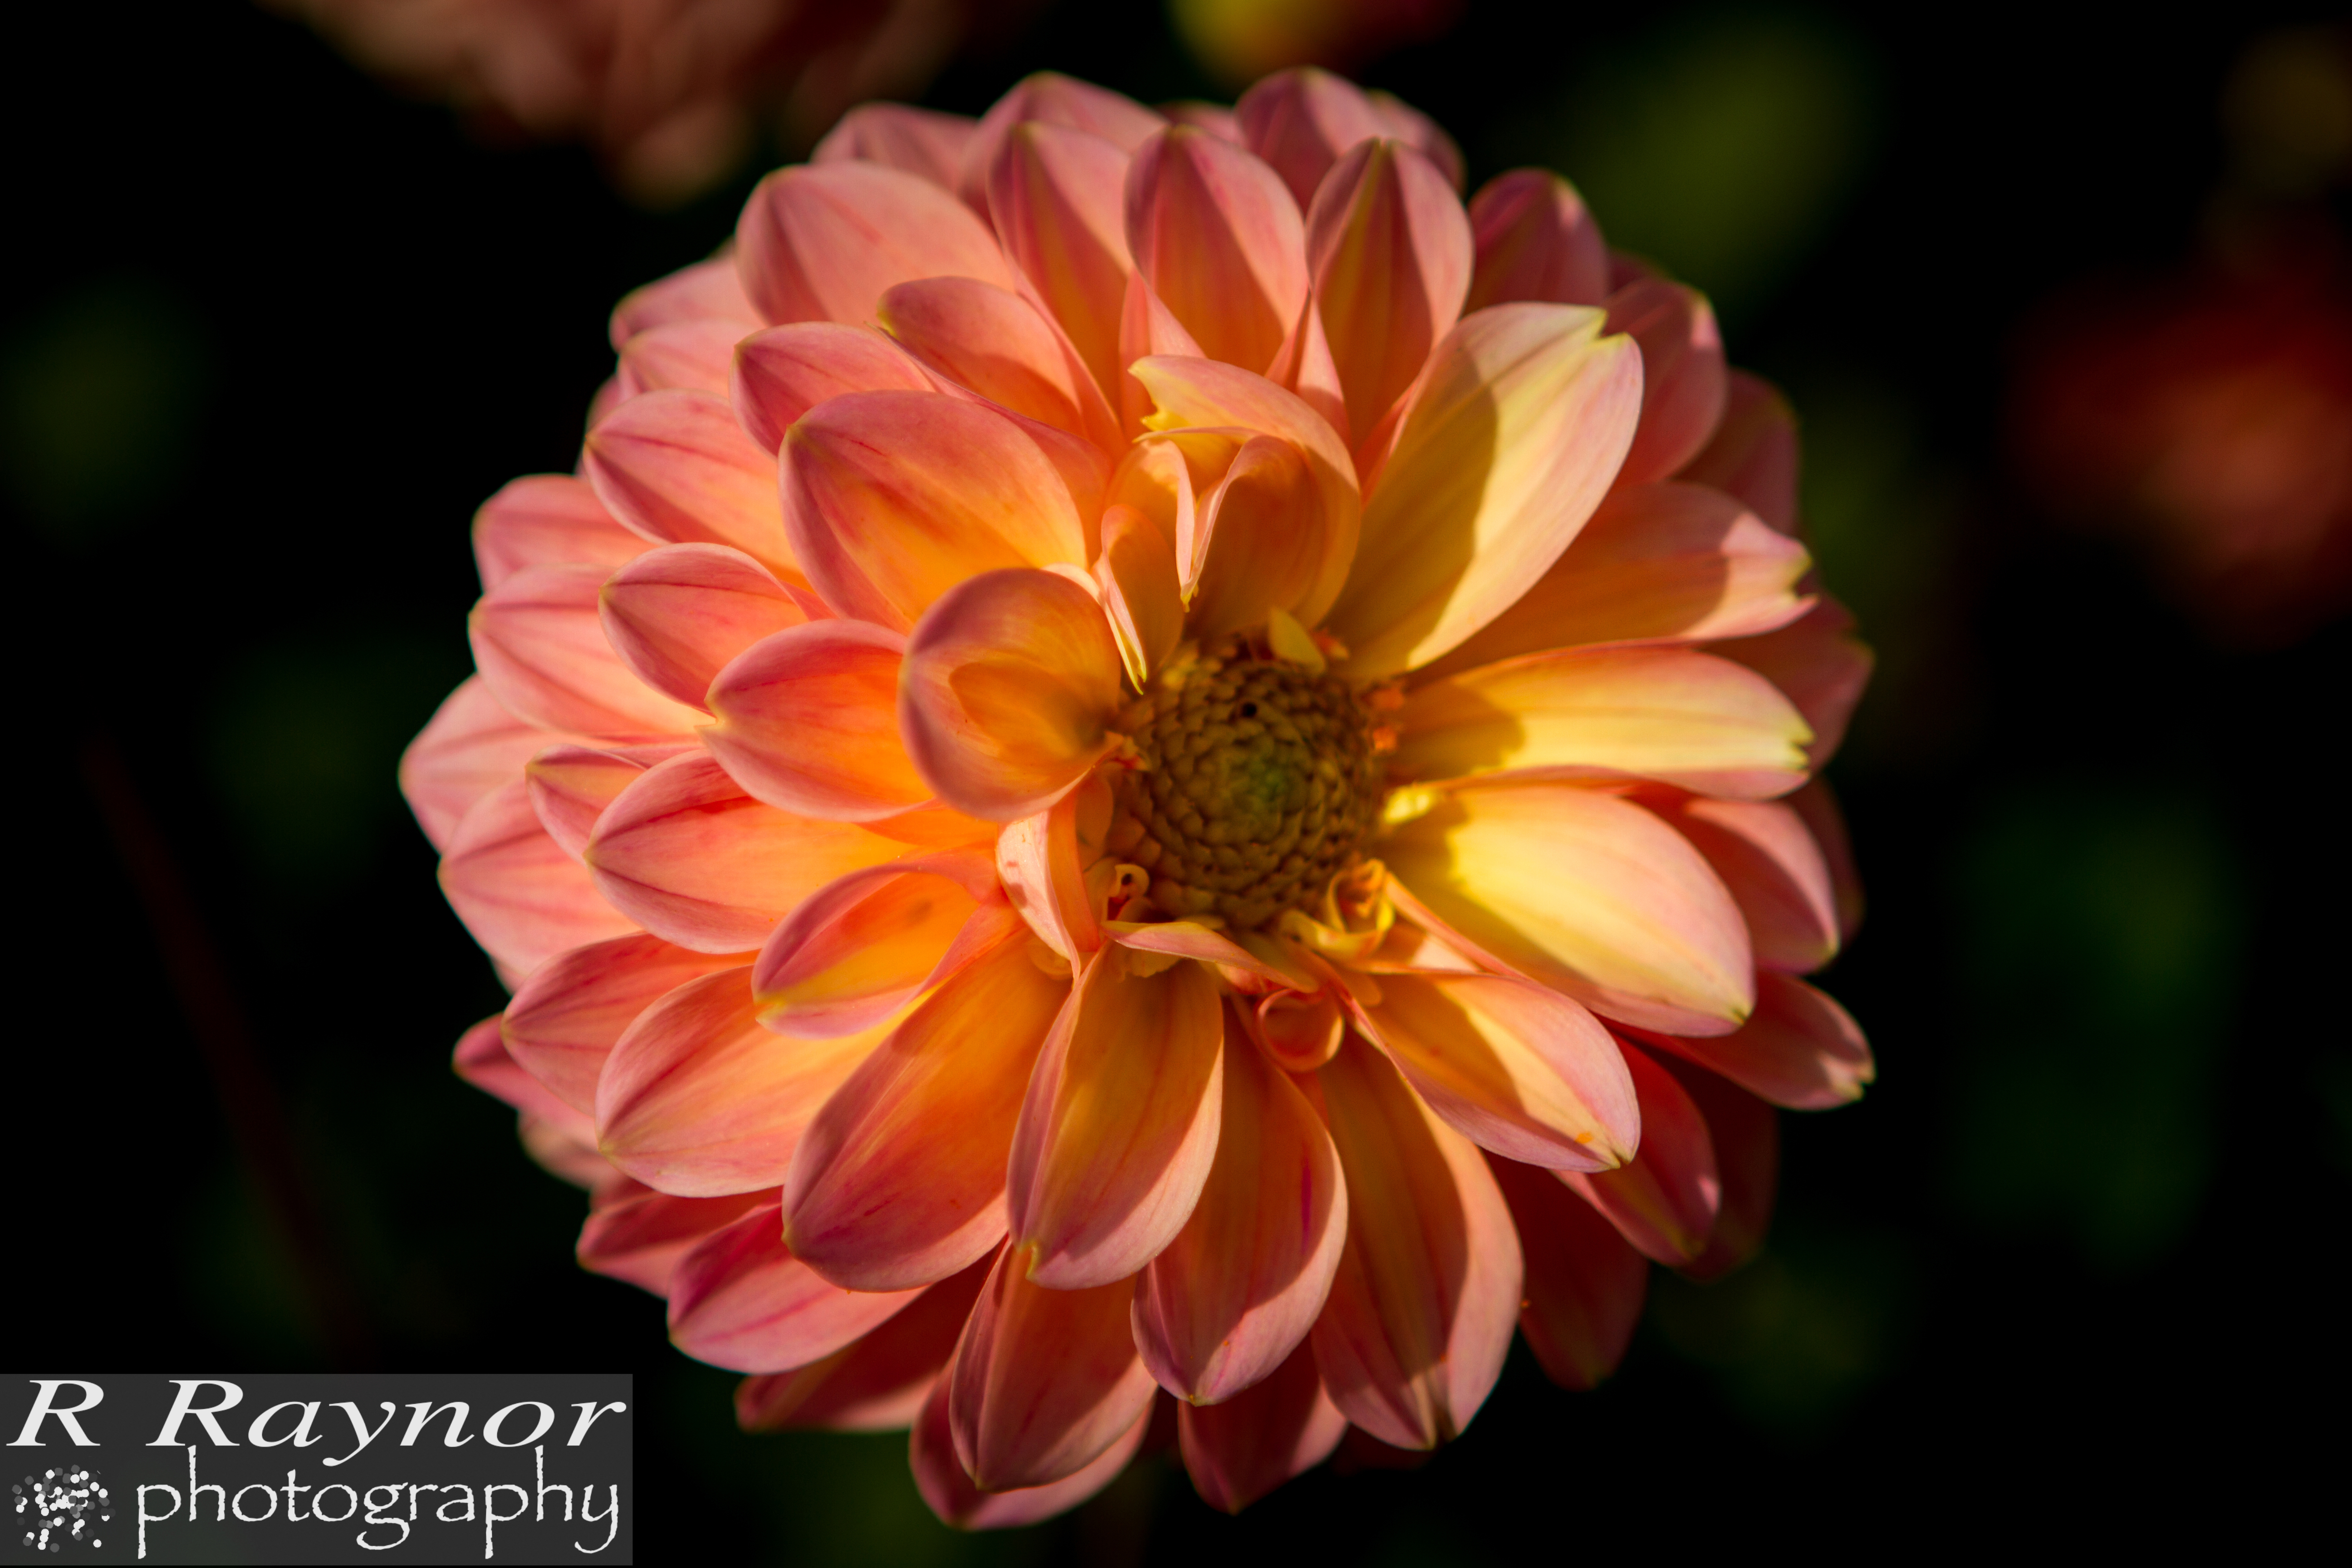 First_20150903_RRaynor0015